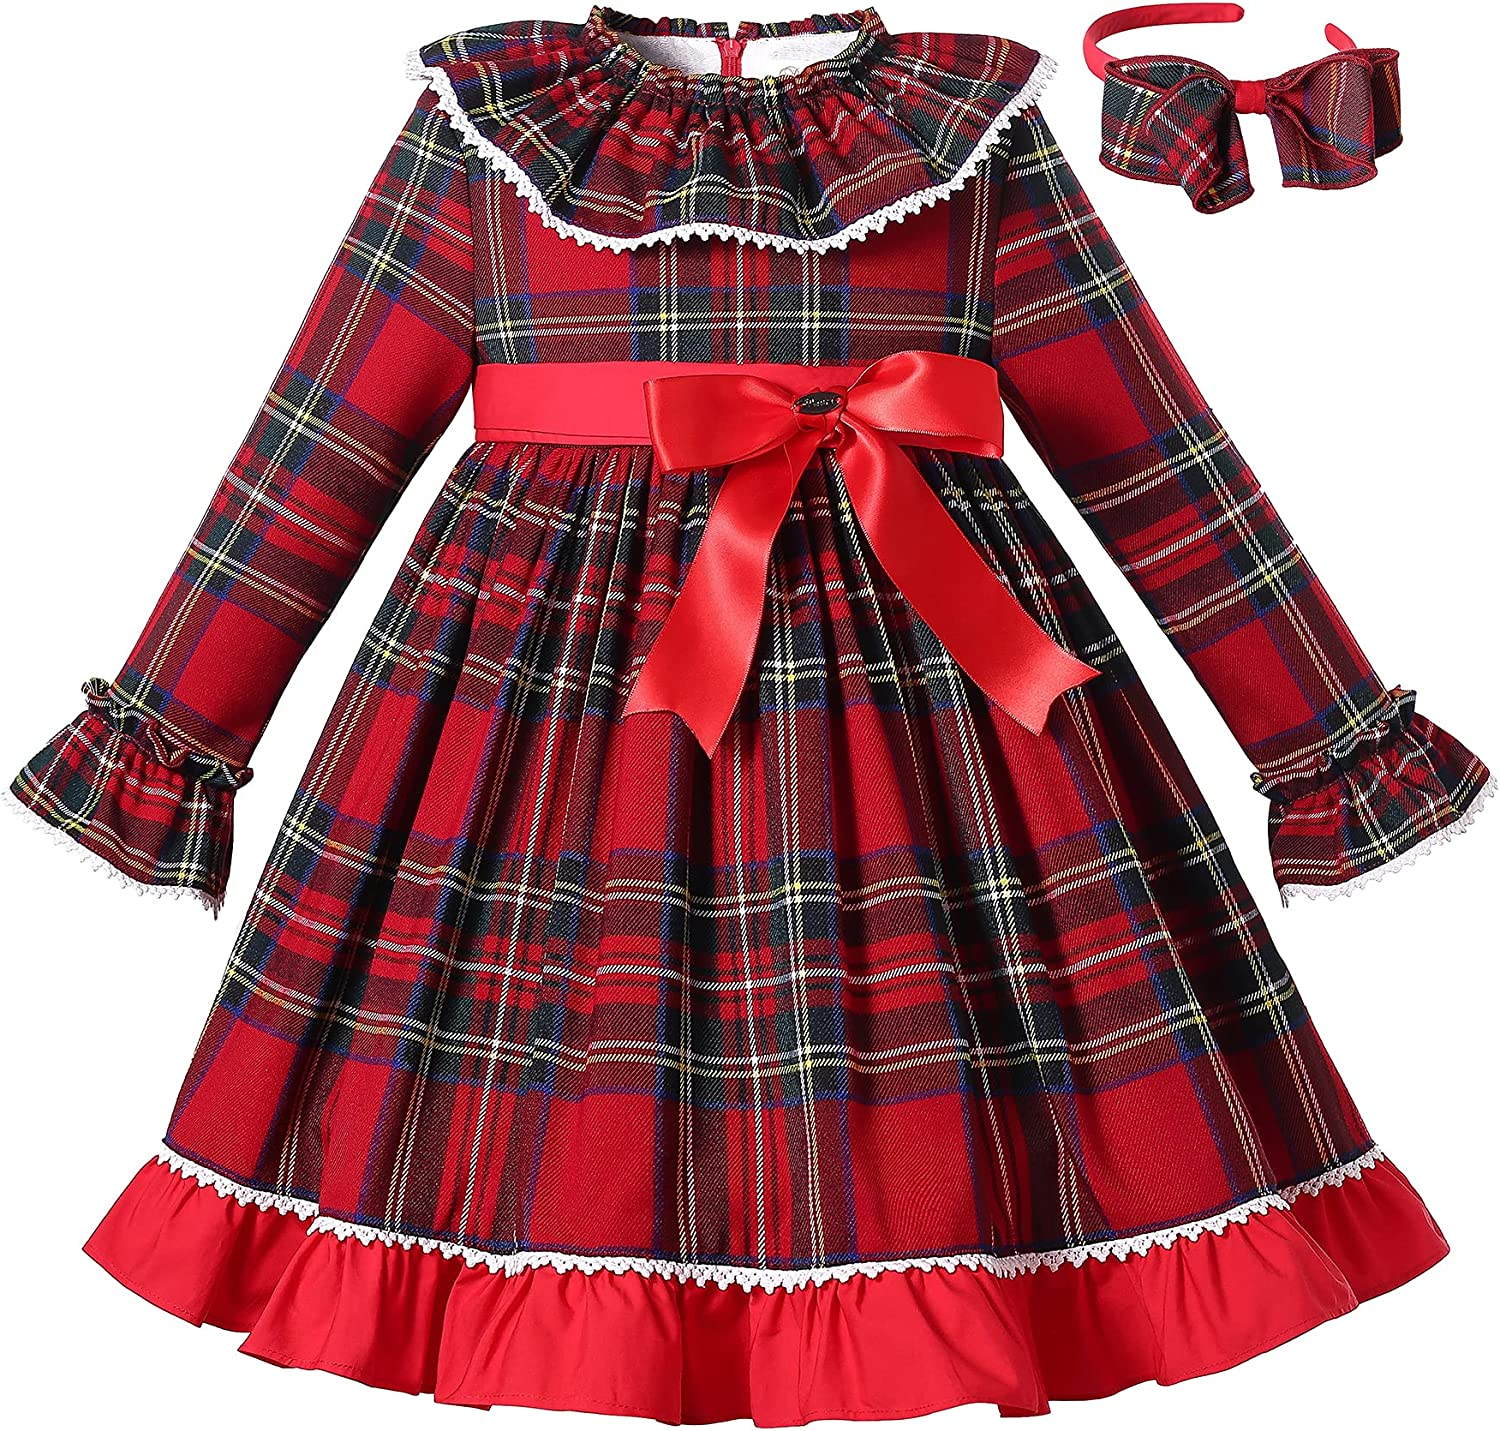 Kids 1950s Clothing & Costumes: Girls, Boys, Toddlers Pettigirl Girls Winter Christmas Red Plaid Long Sleeve Ruffle Clothing Kids Toddler Vintage Formal Party Dresses Outfit  AT vintagedancer.com